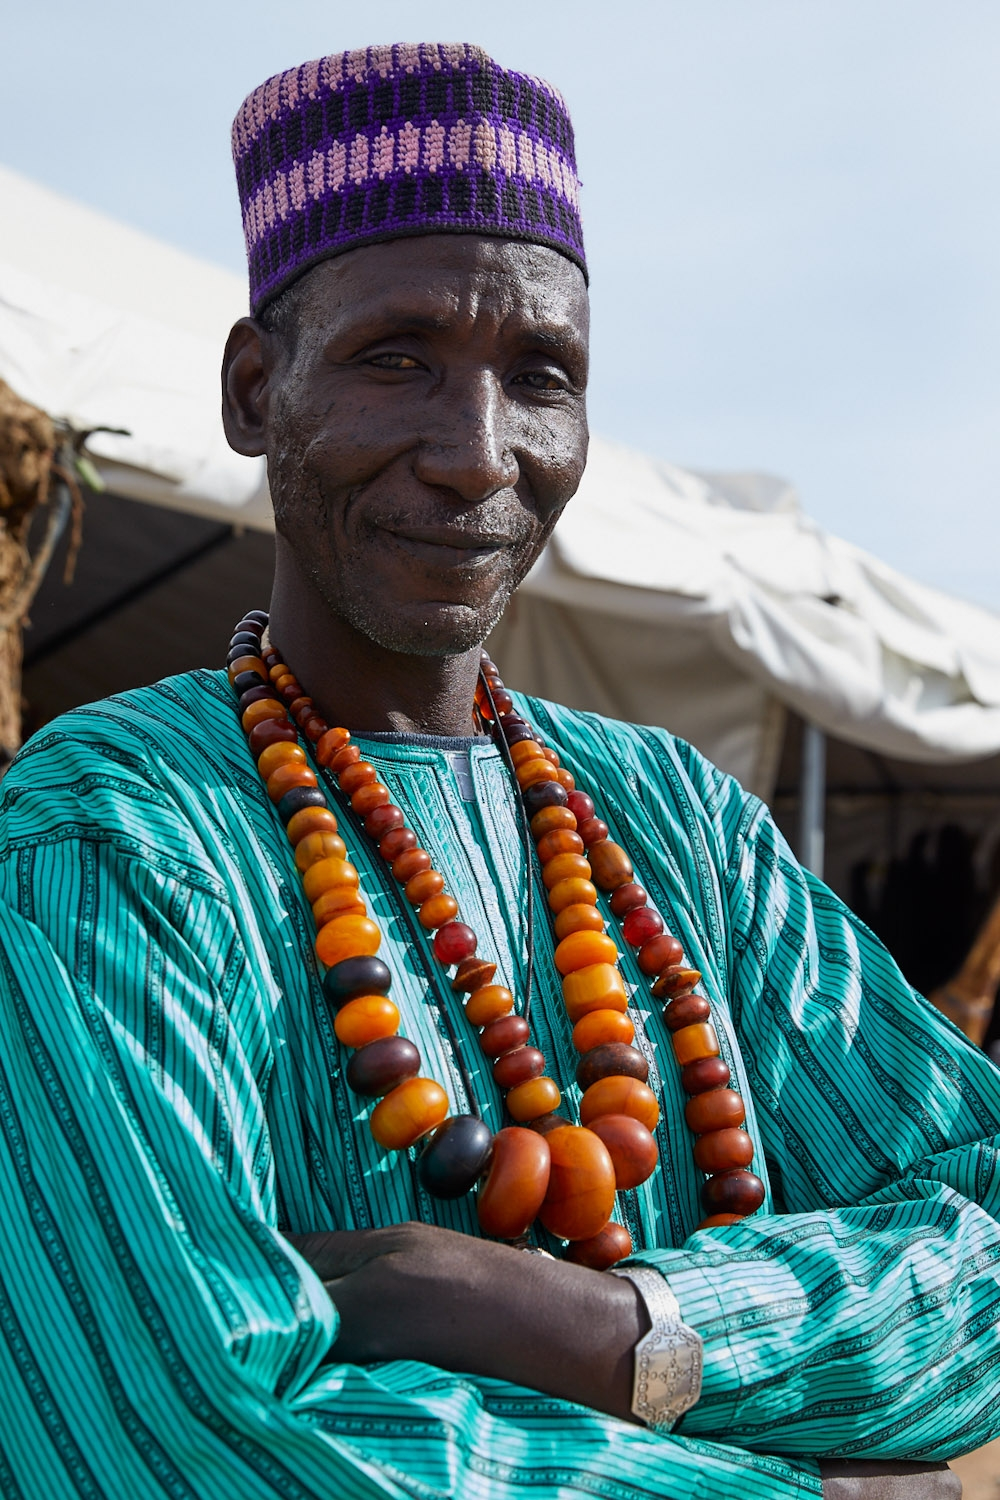 Hudu with Antique African Copal Amber necklaces  Photo: Lynda Churilla